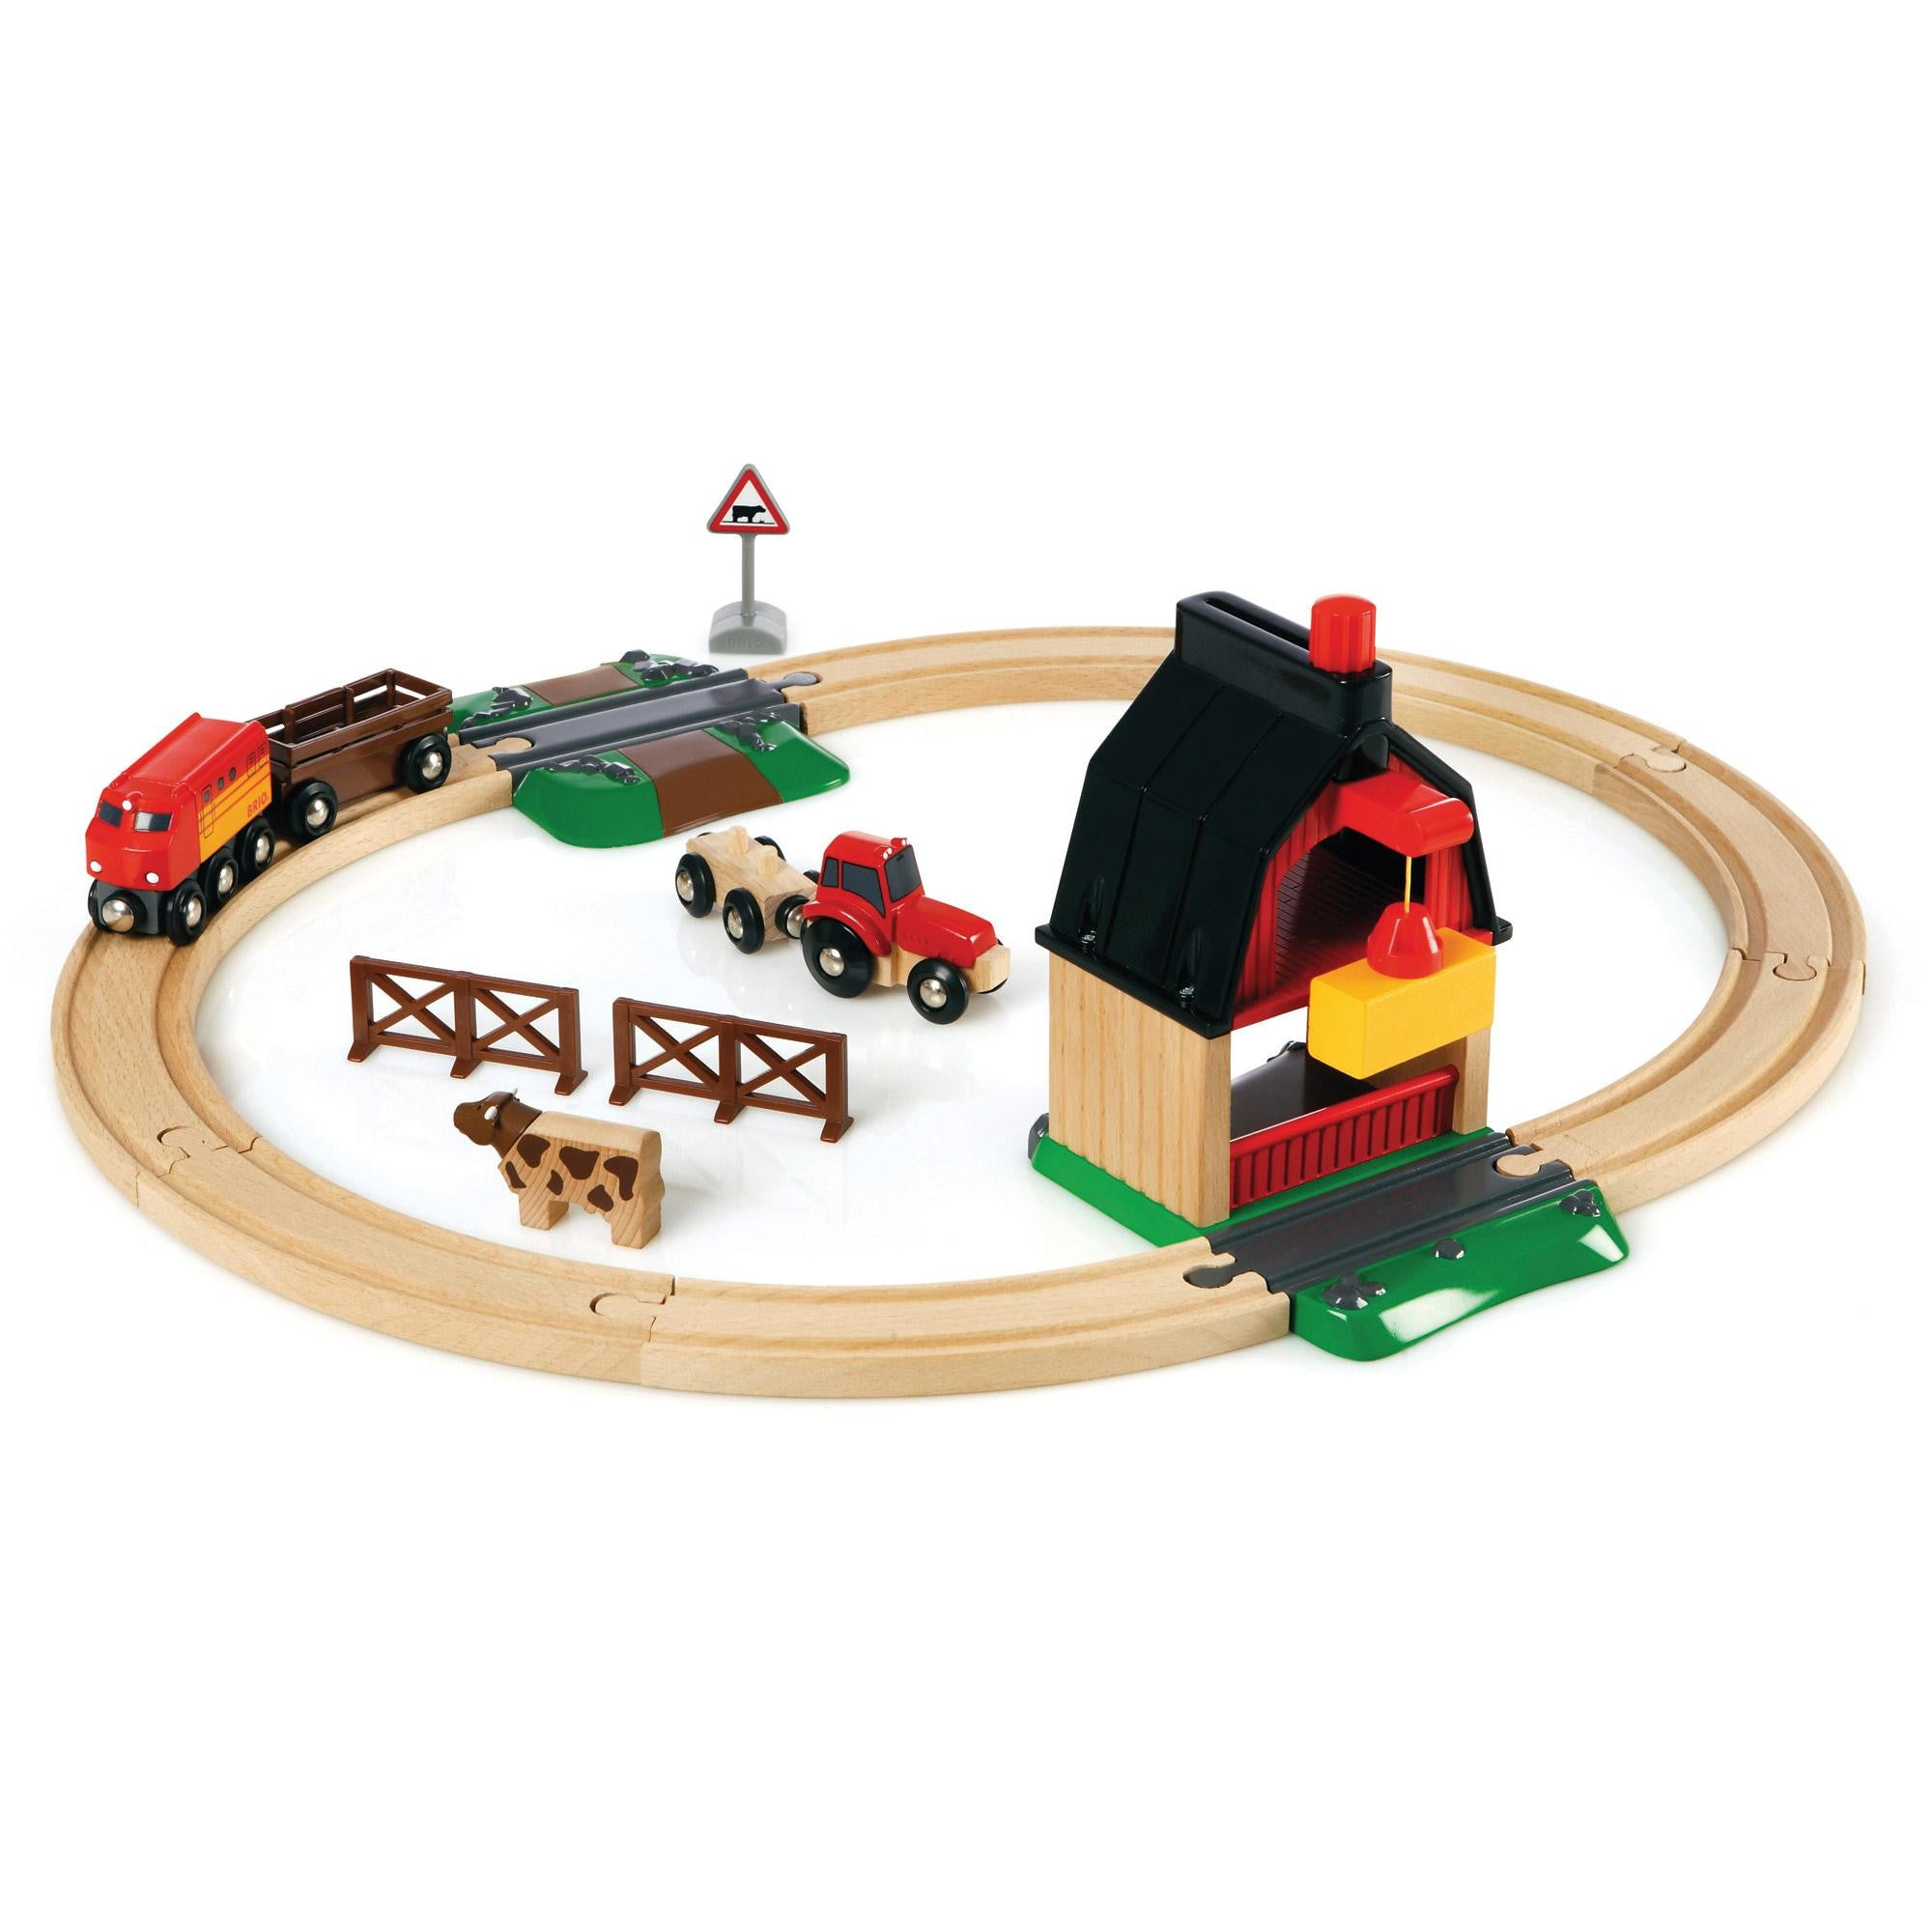 BRIO Train Set - Farm Railway 33719